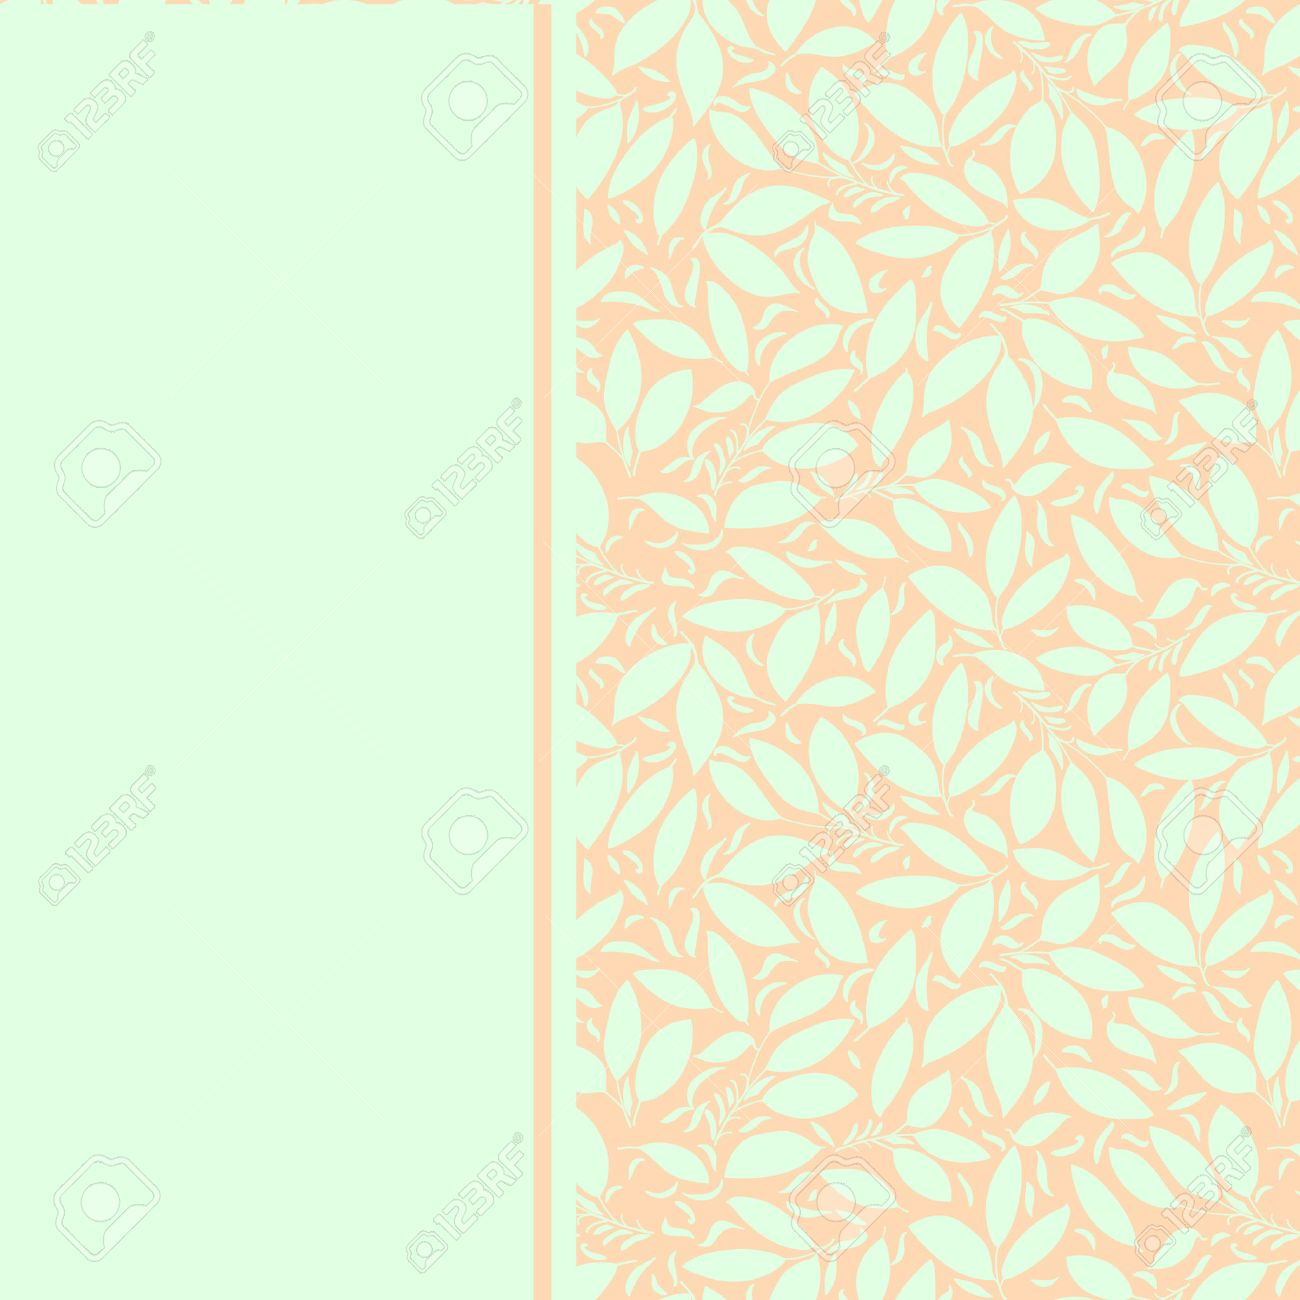 Card With Plant Ornament Pastel Mint Color On A Peach Color Royalty Free Cliparts Vectors And Stock Illustration Image 26693255